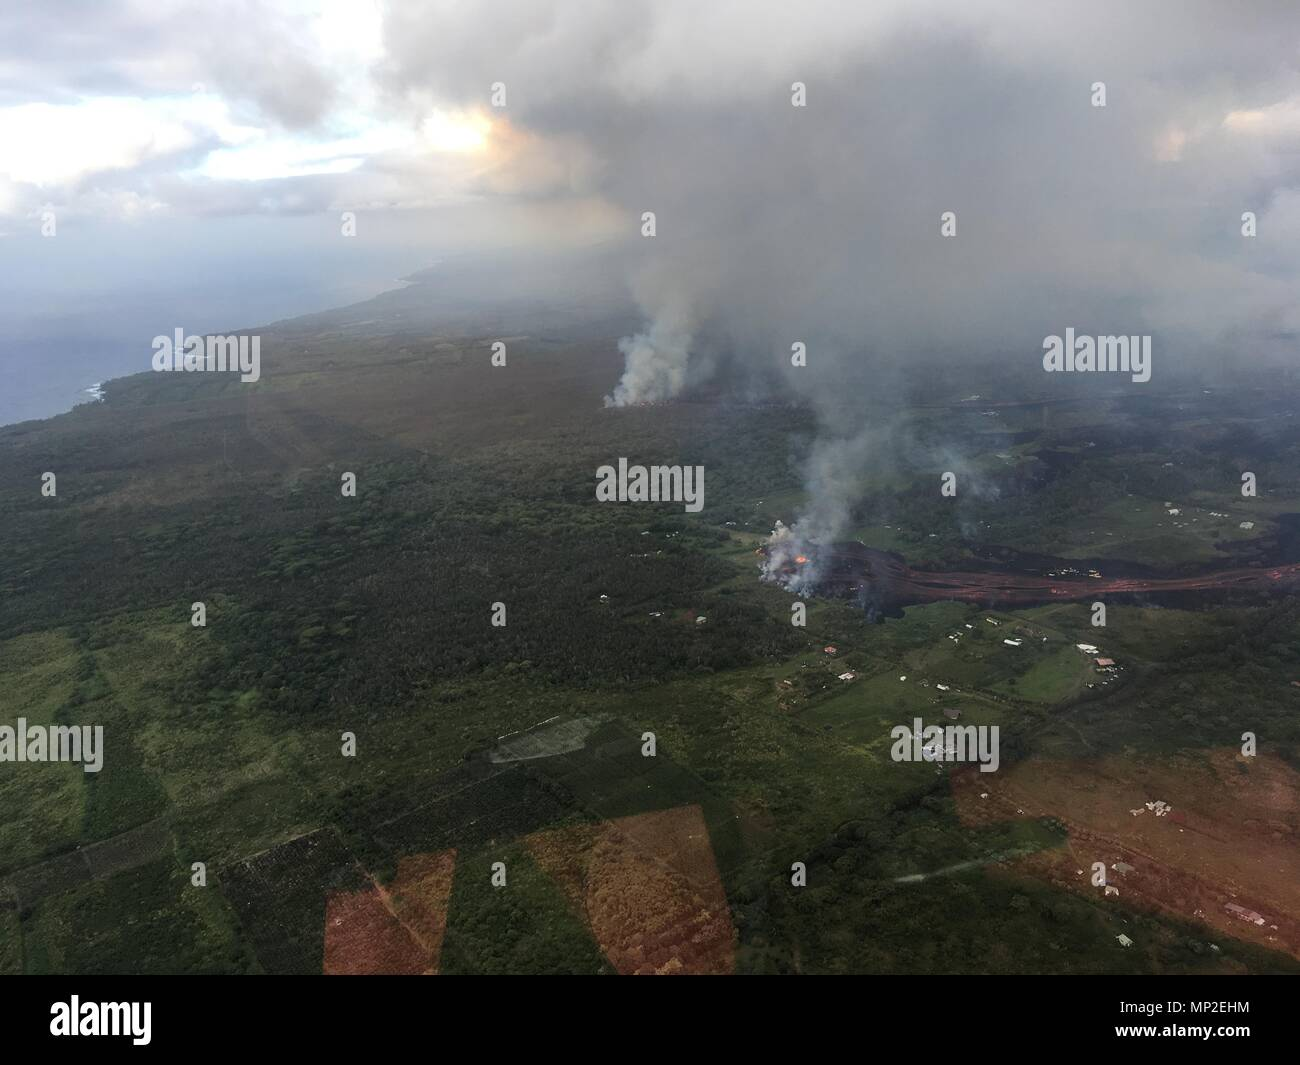 Lava and poisonous sulfur dioxide plumes rise from fissure 20 as the molten magma heads toward the ocean from the eruption of the Kilauea volcano May 19, 2018 in Pahoa, Hawaii. Hot lava entering the ocean creates a dense white plume called 'laze' (short for 'lava haze'). Laze is formed as hot lava boils seawater to dryness. The process leads to a series of chemical reactions that create a billowing white cloud composed of a condensed seawater steam, hydrochloric acid gas, and tiny shards of volcanic glass. The cloud is as corrosive as dilute battery acid, and should be avoided. - Stock Image